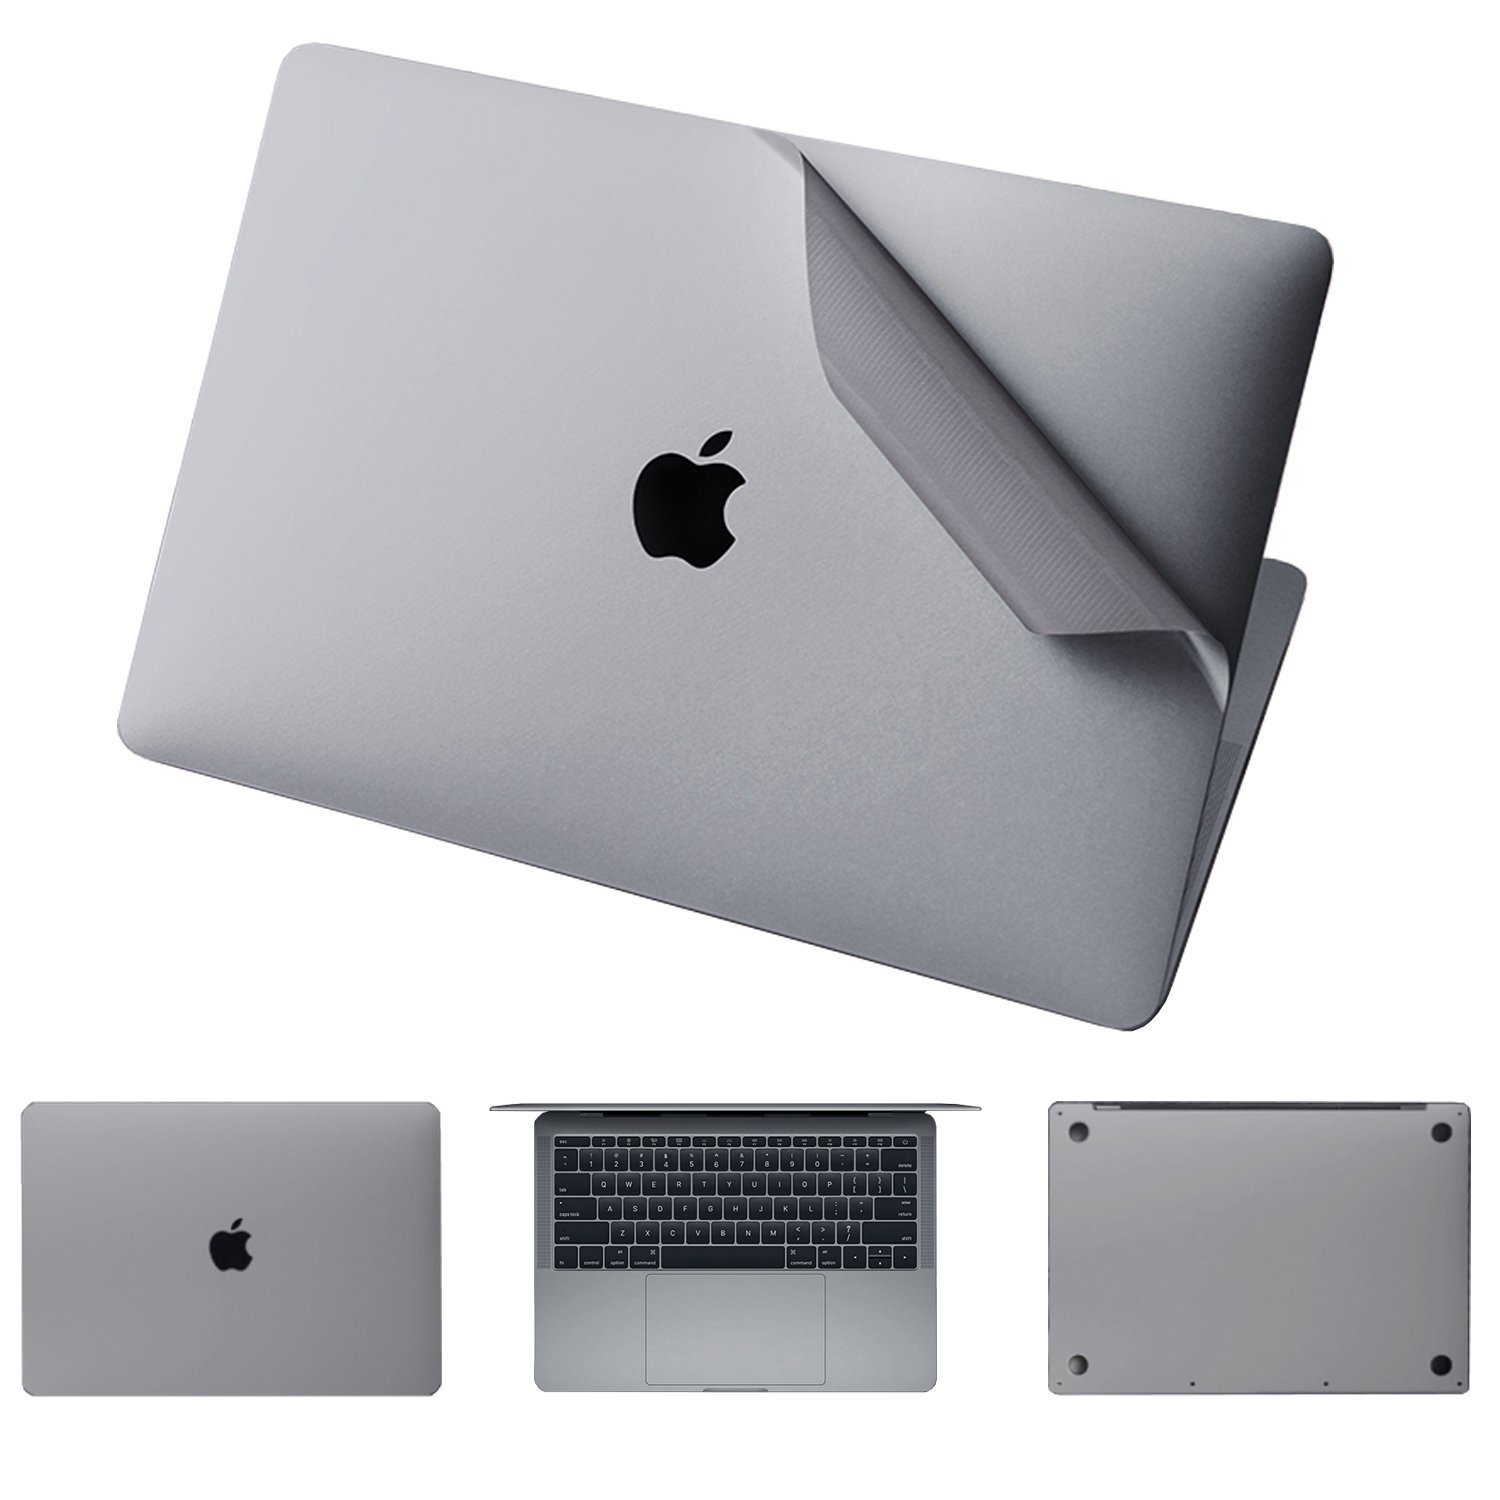 Leze - 4-in-1 Full Body Cover MacBook Skin Protector Decals Sticker for Apple Macbook Air 13-inch 13.3'' A1466 & A1369 - Space Gray